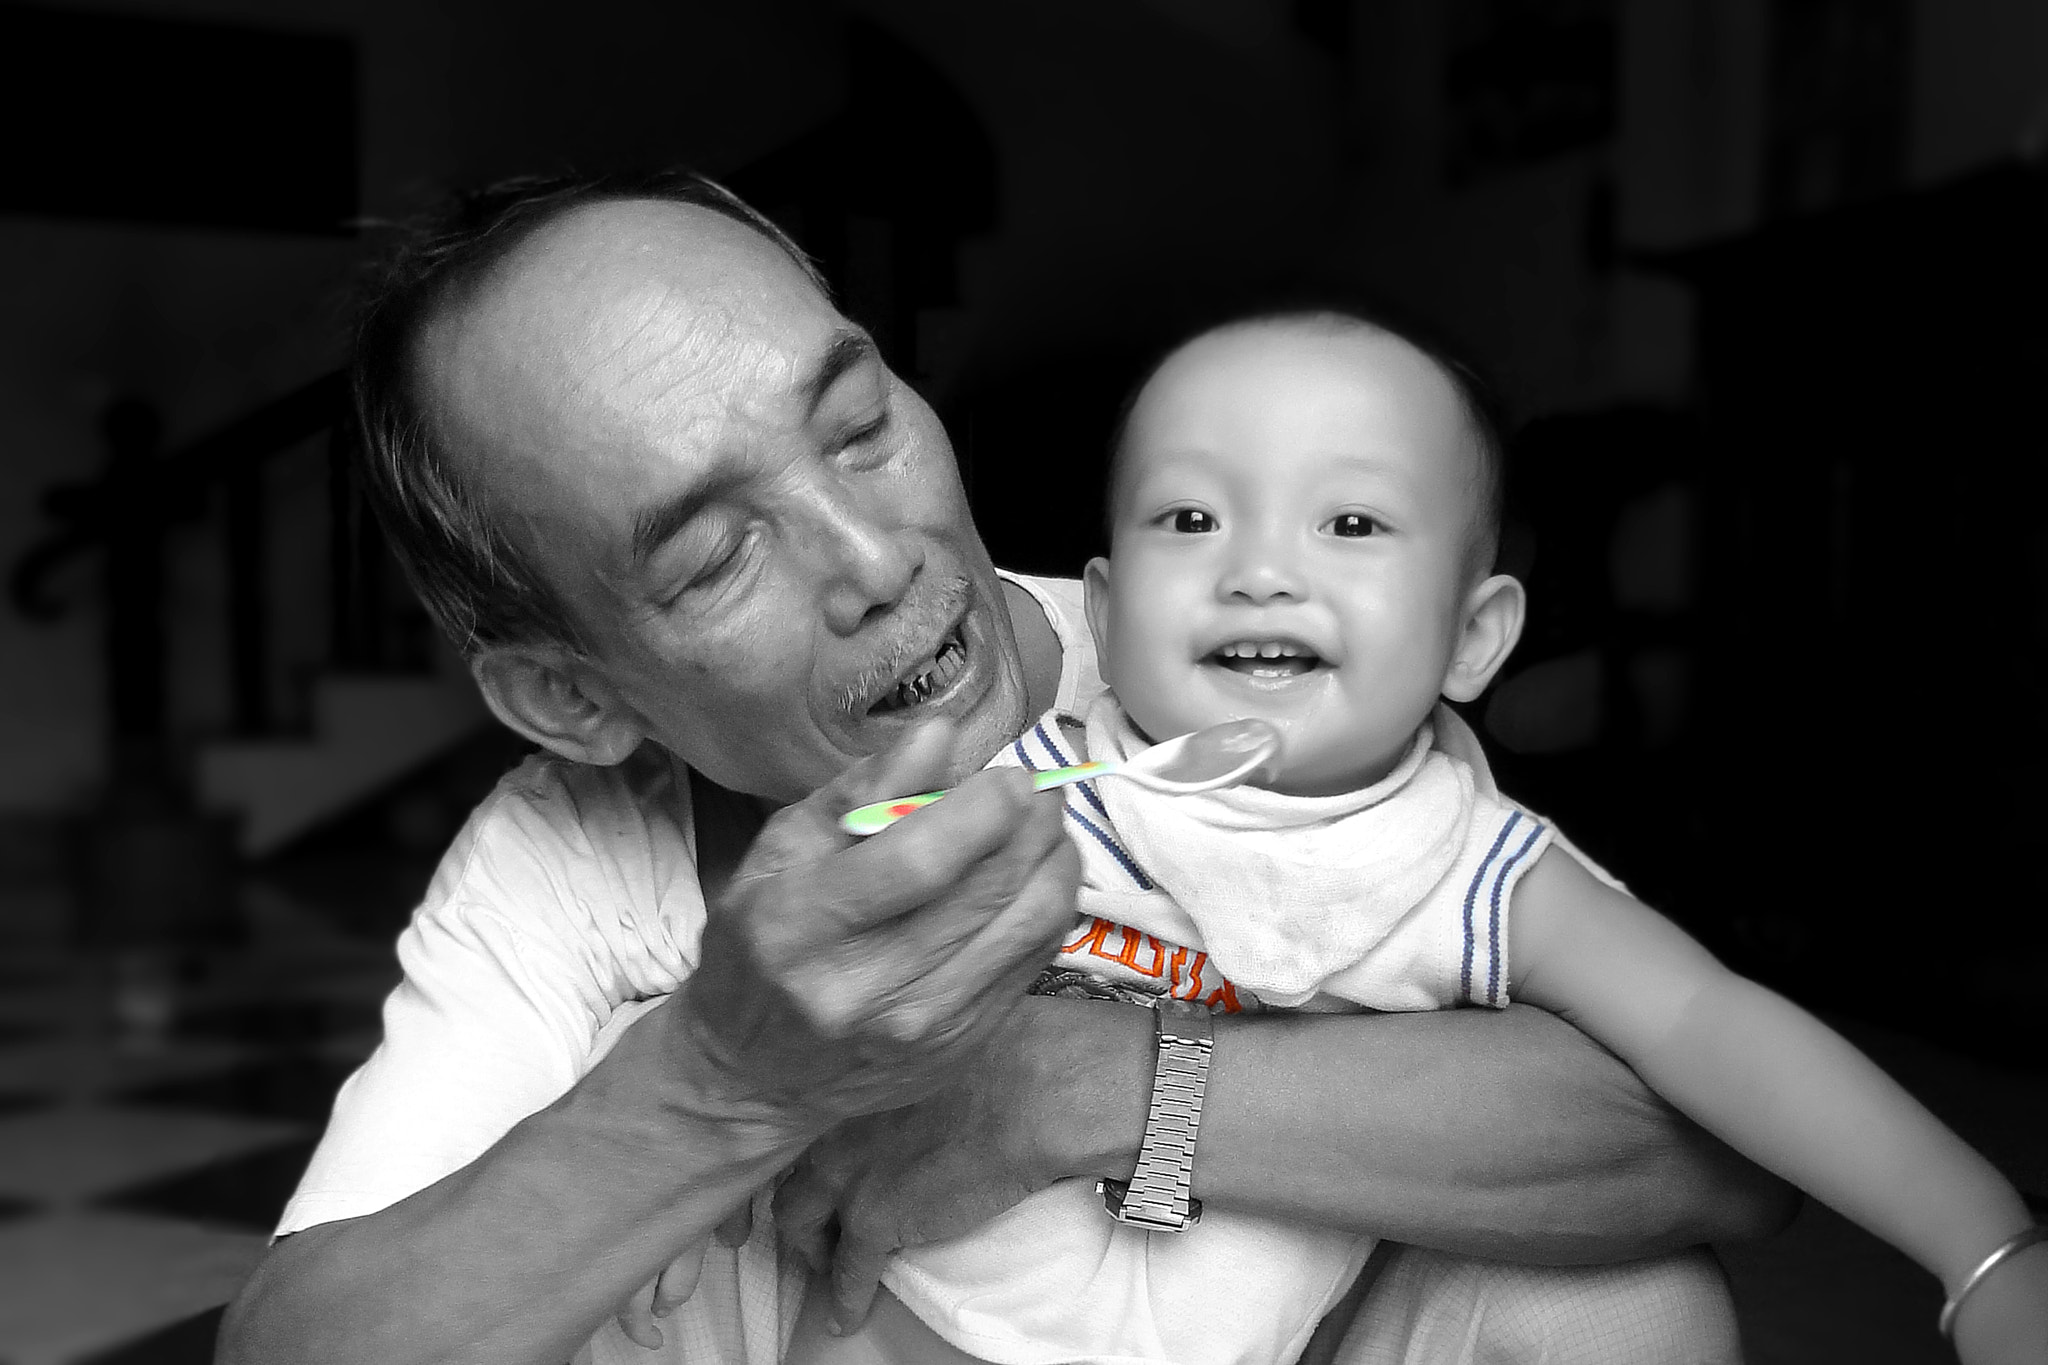 Photograph Grandfather & Grandson by DR.OF.IN | Photography on 500px